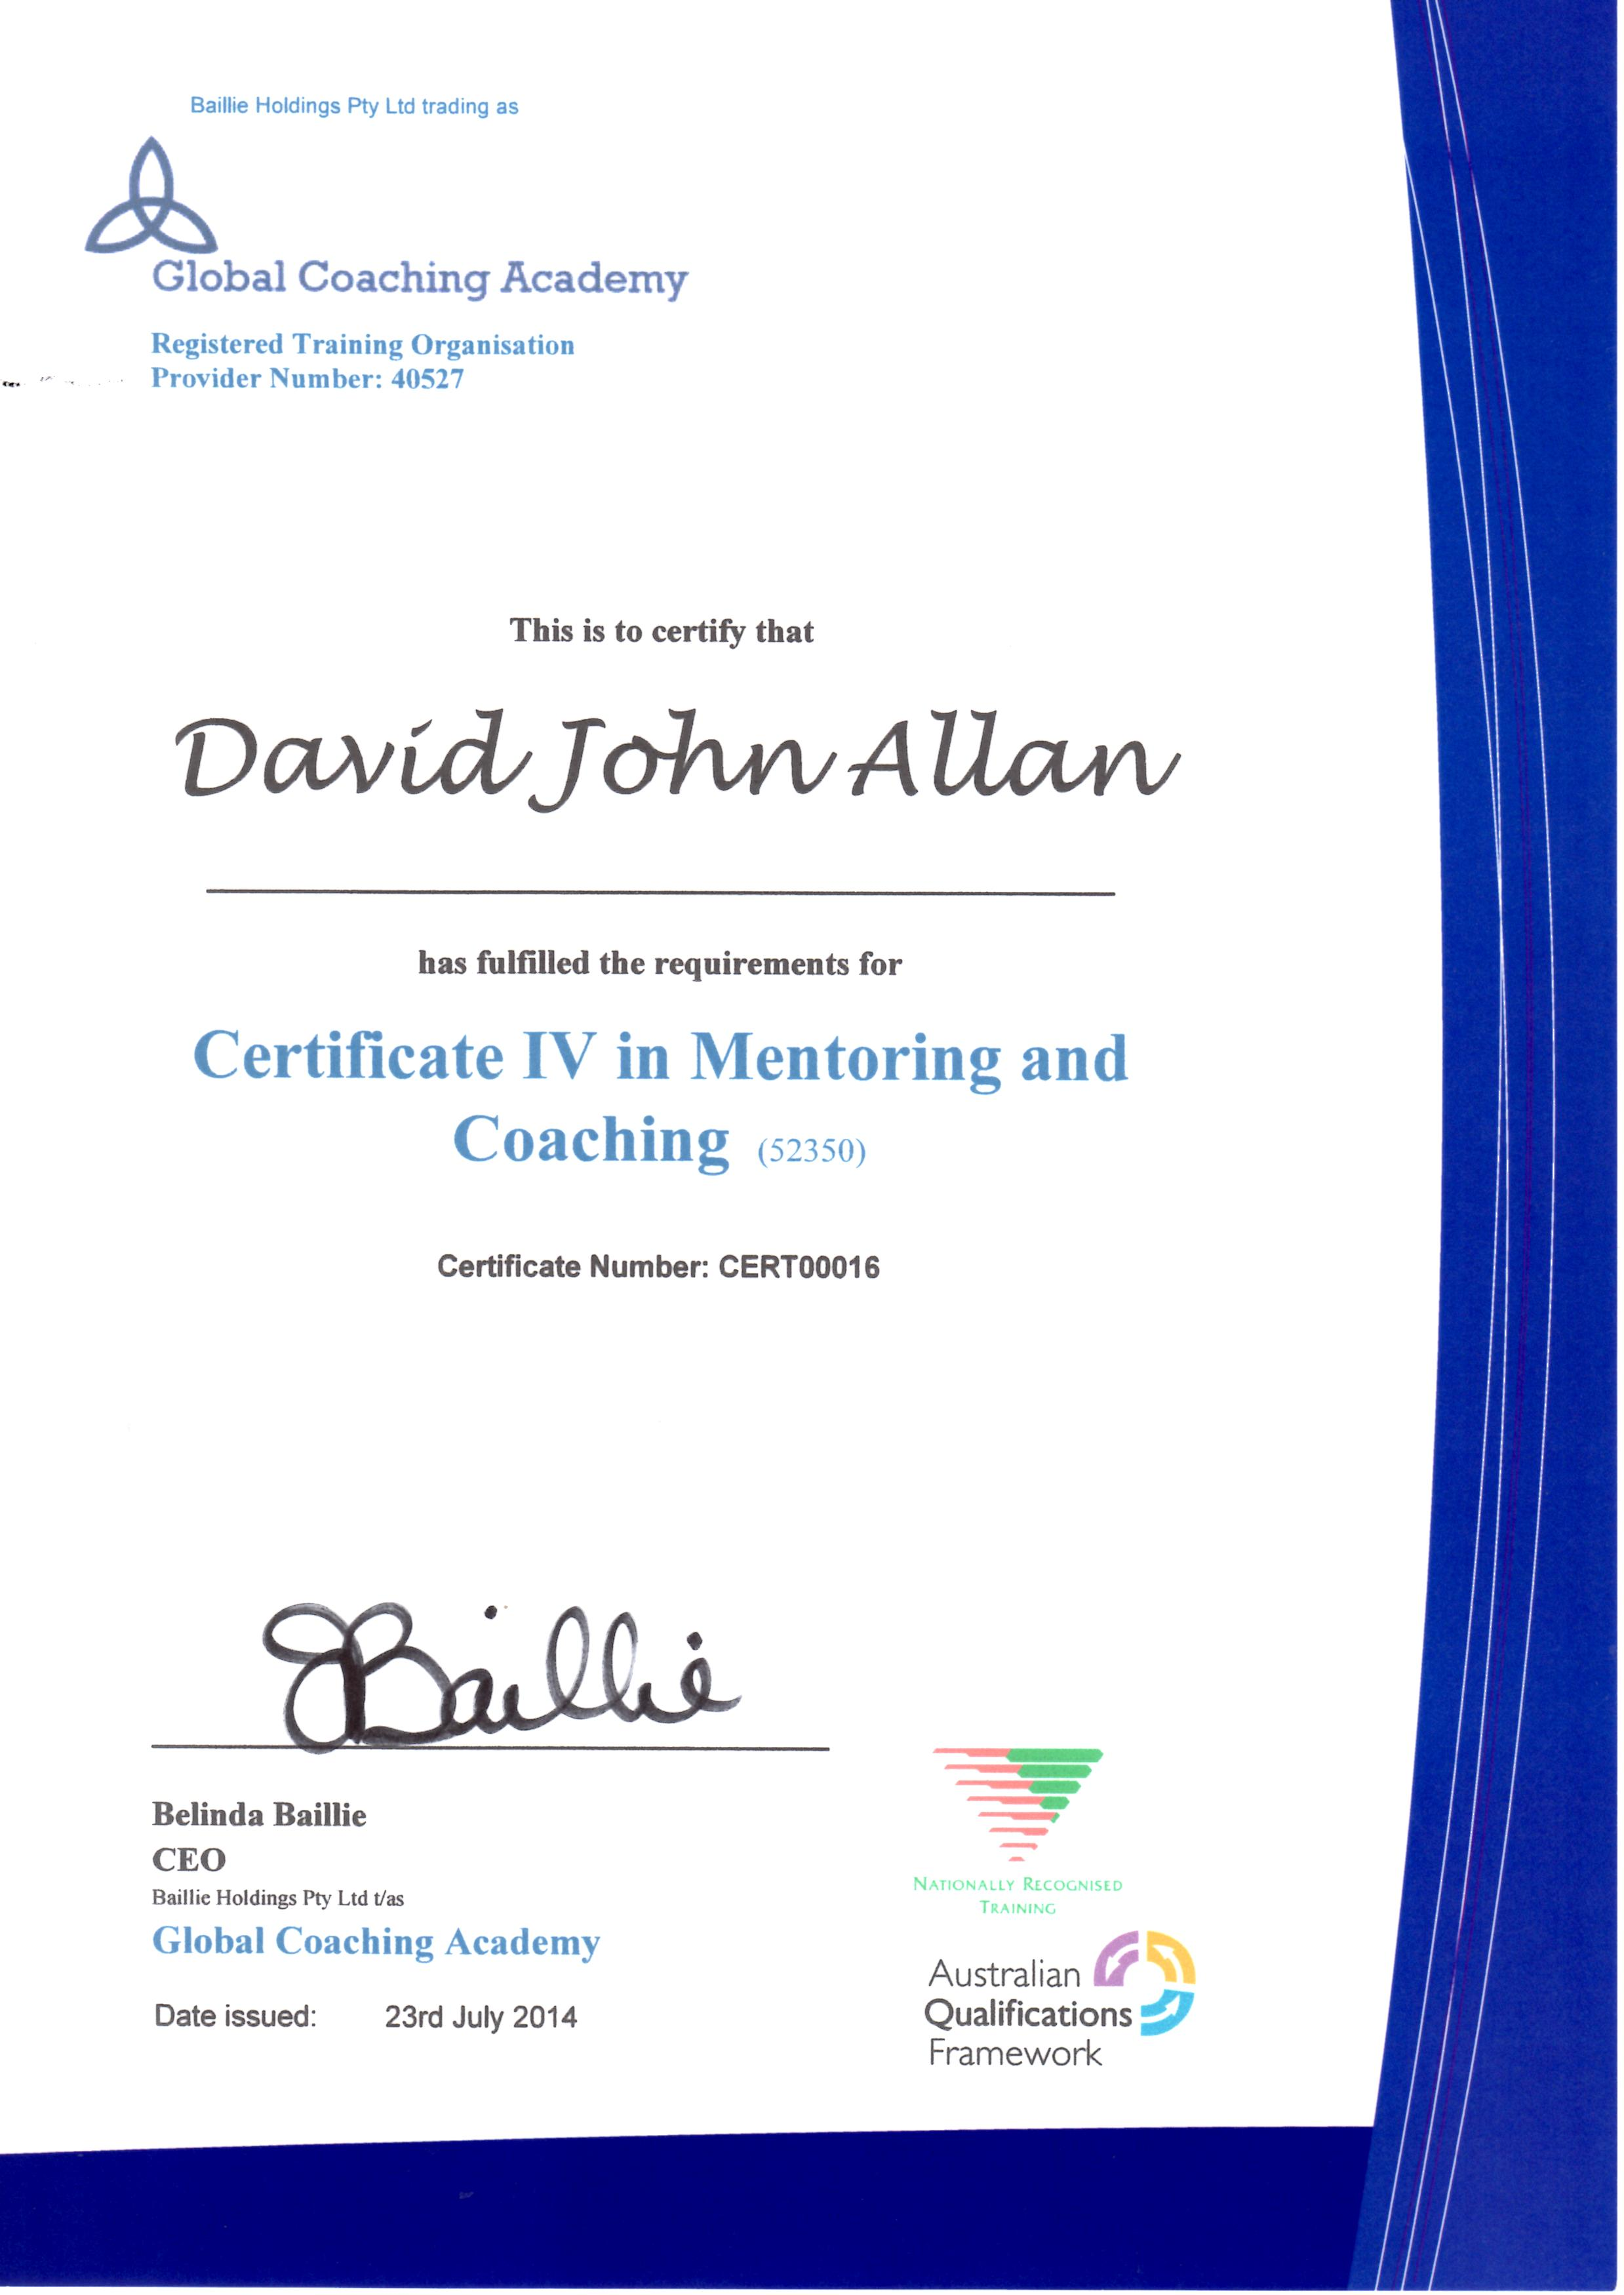 Dave Qualification Documents – Coaching | NDV: Creatively ...